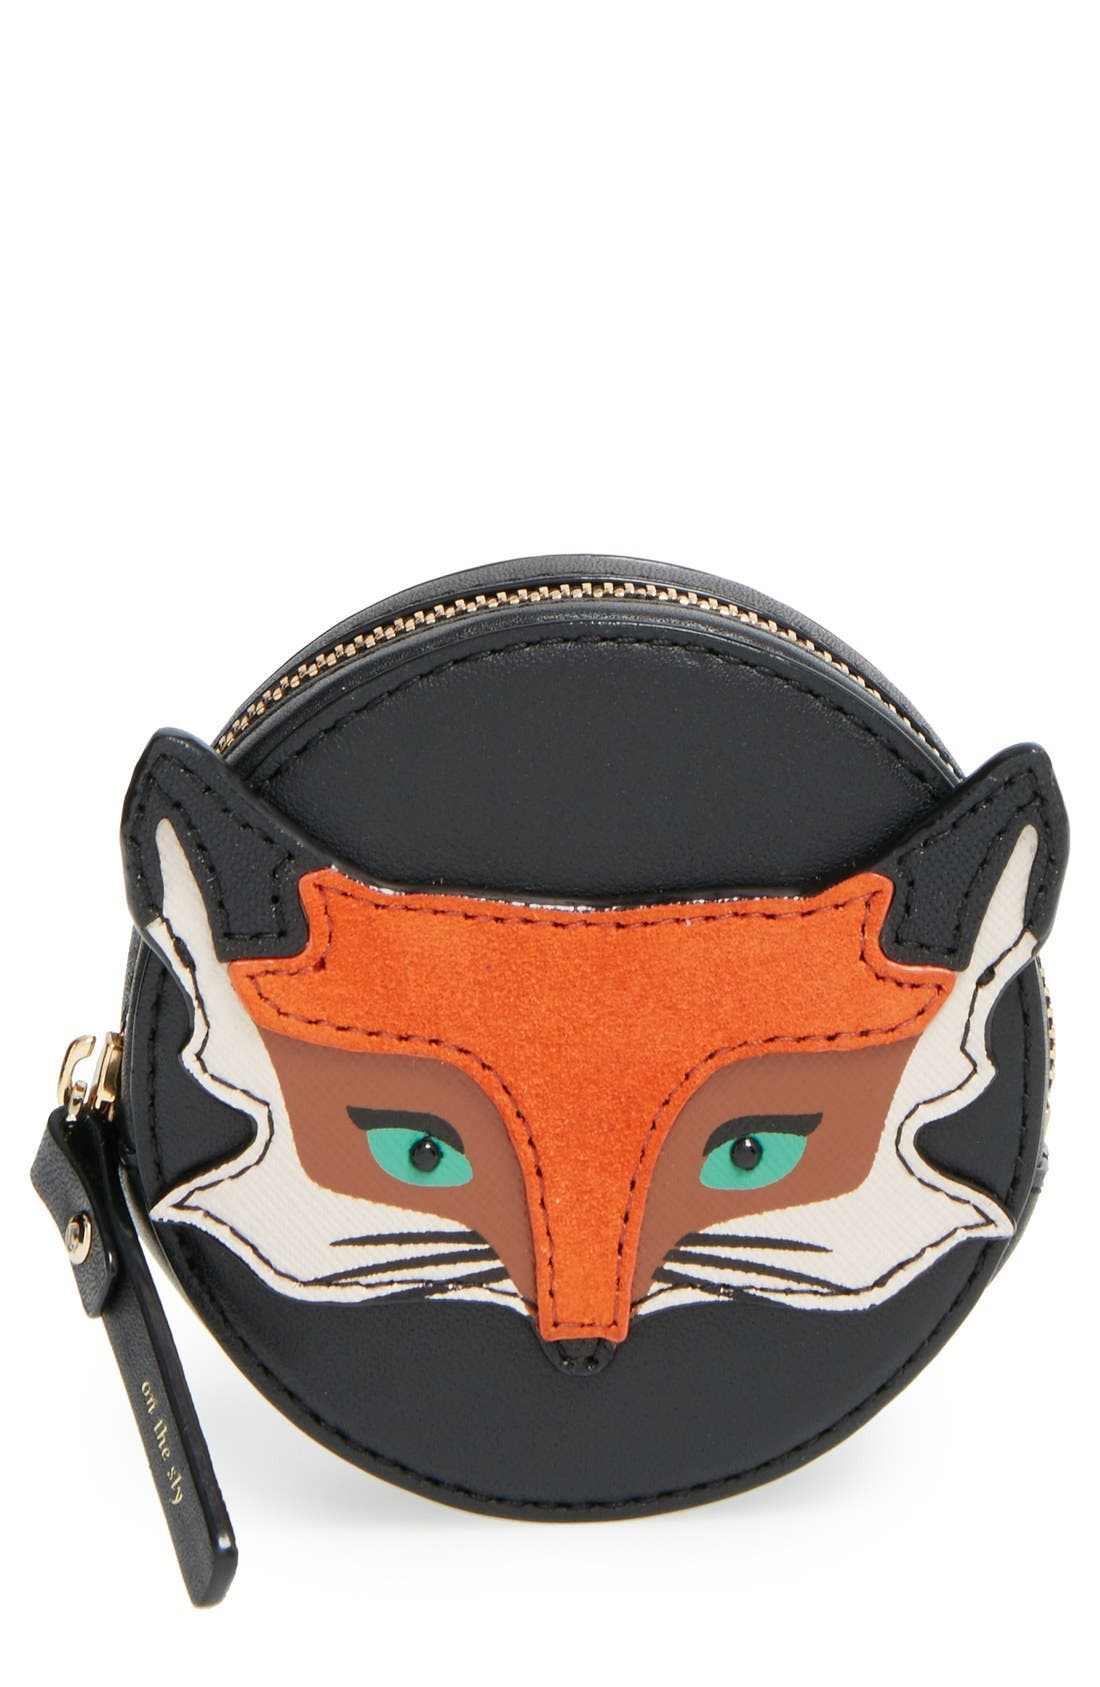 KATE SPADE NEW YORK,                             kate spade new york 'blaze a trail - fox' leather coin purse,                             Main thumbnail 1, color,                             001